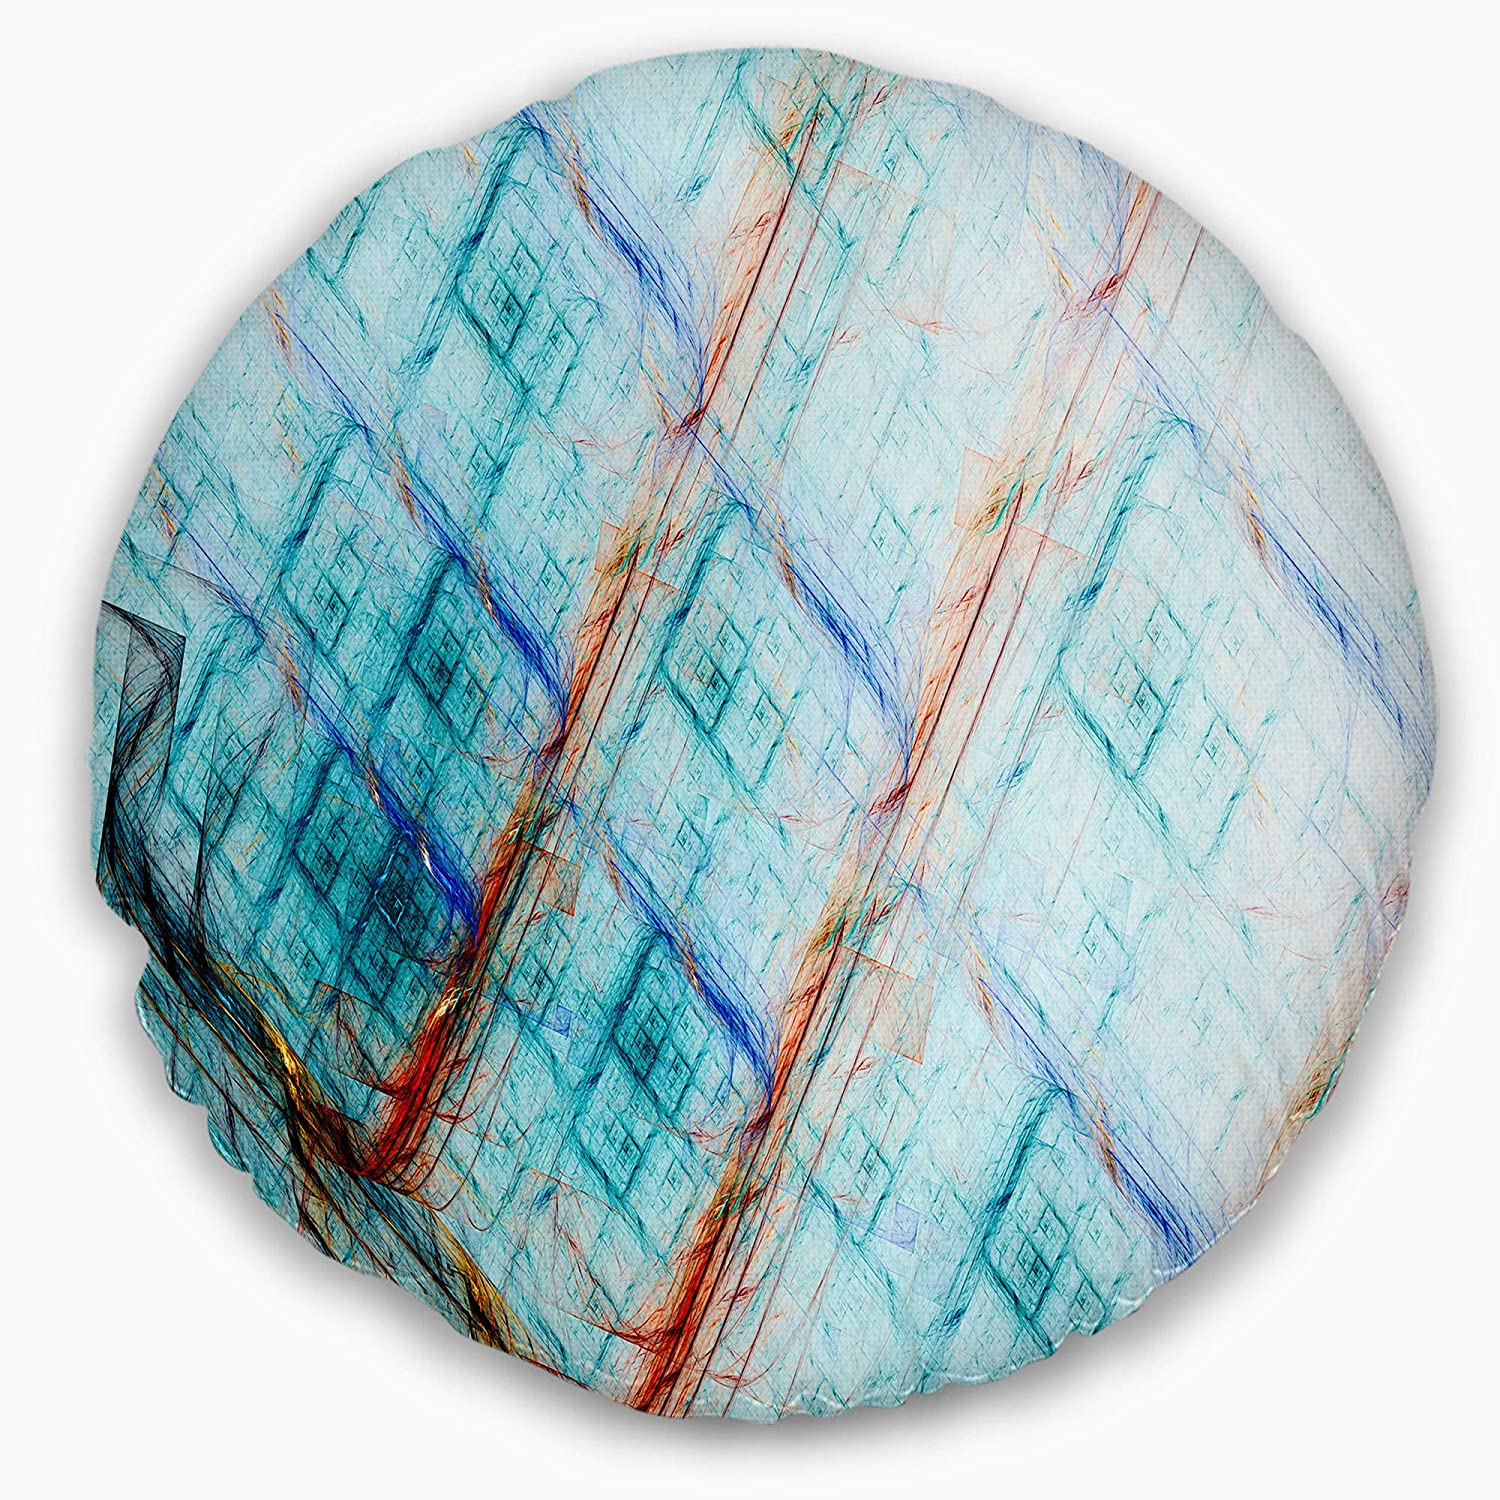 Sofa Throw Pillow 20 Designart CU15810-20-20-C Light Blue Metal Grill Abstract Round Cushion Cover for Living Room